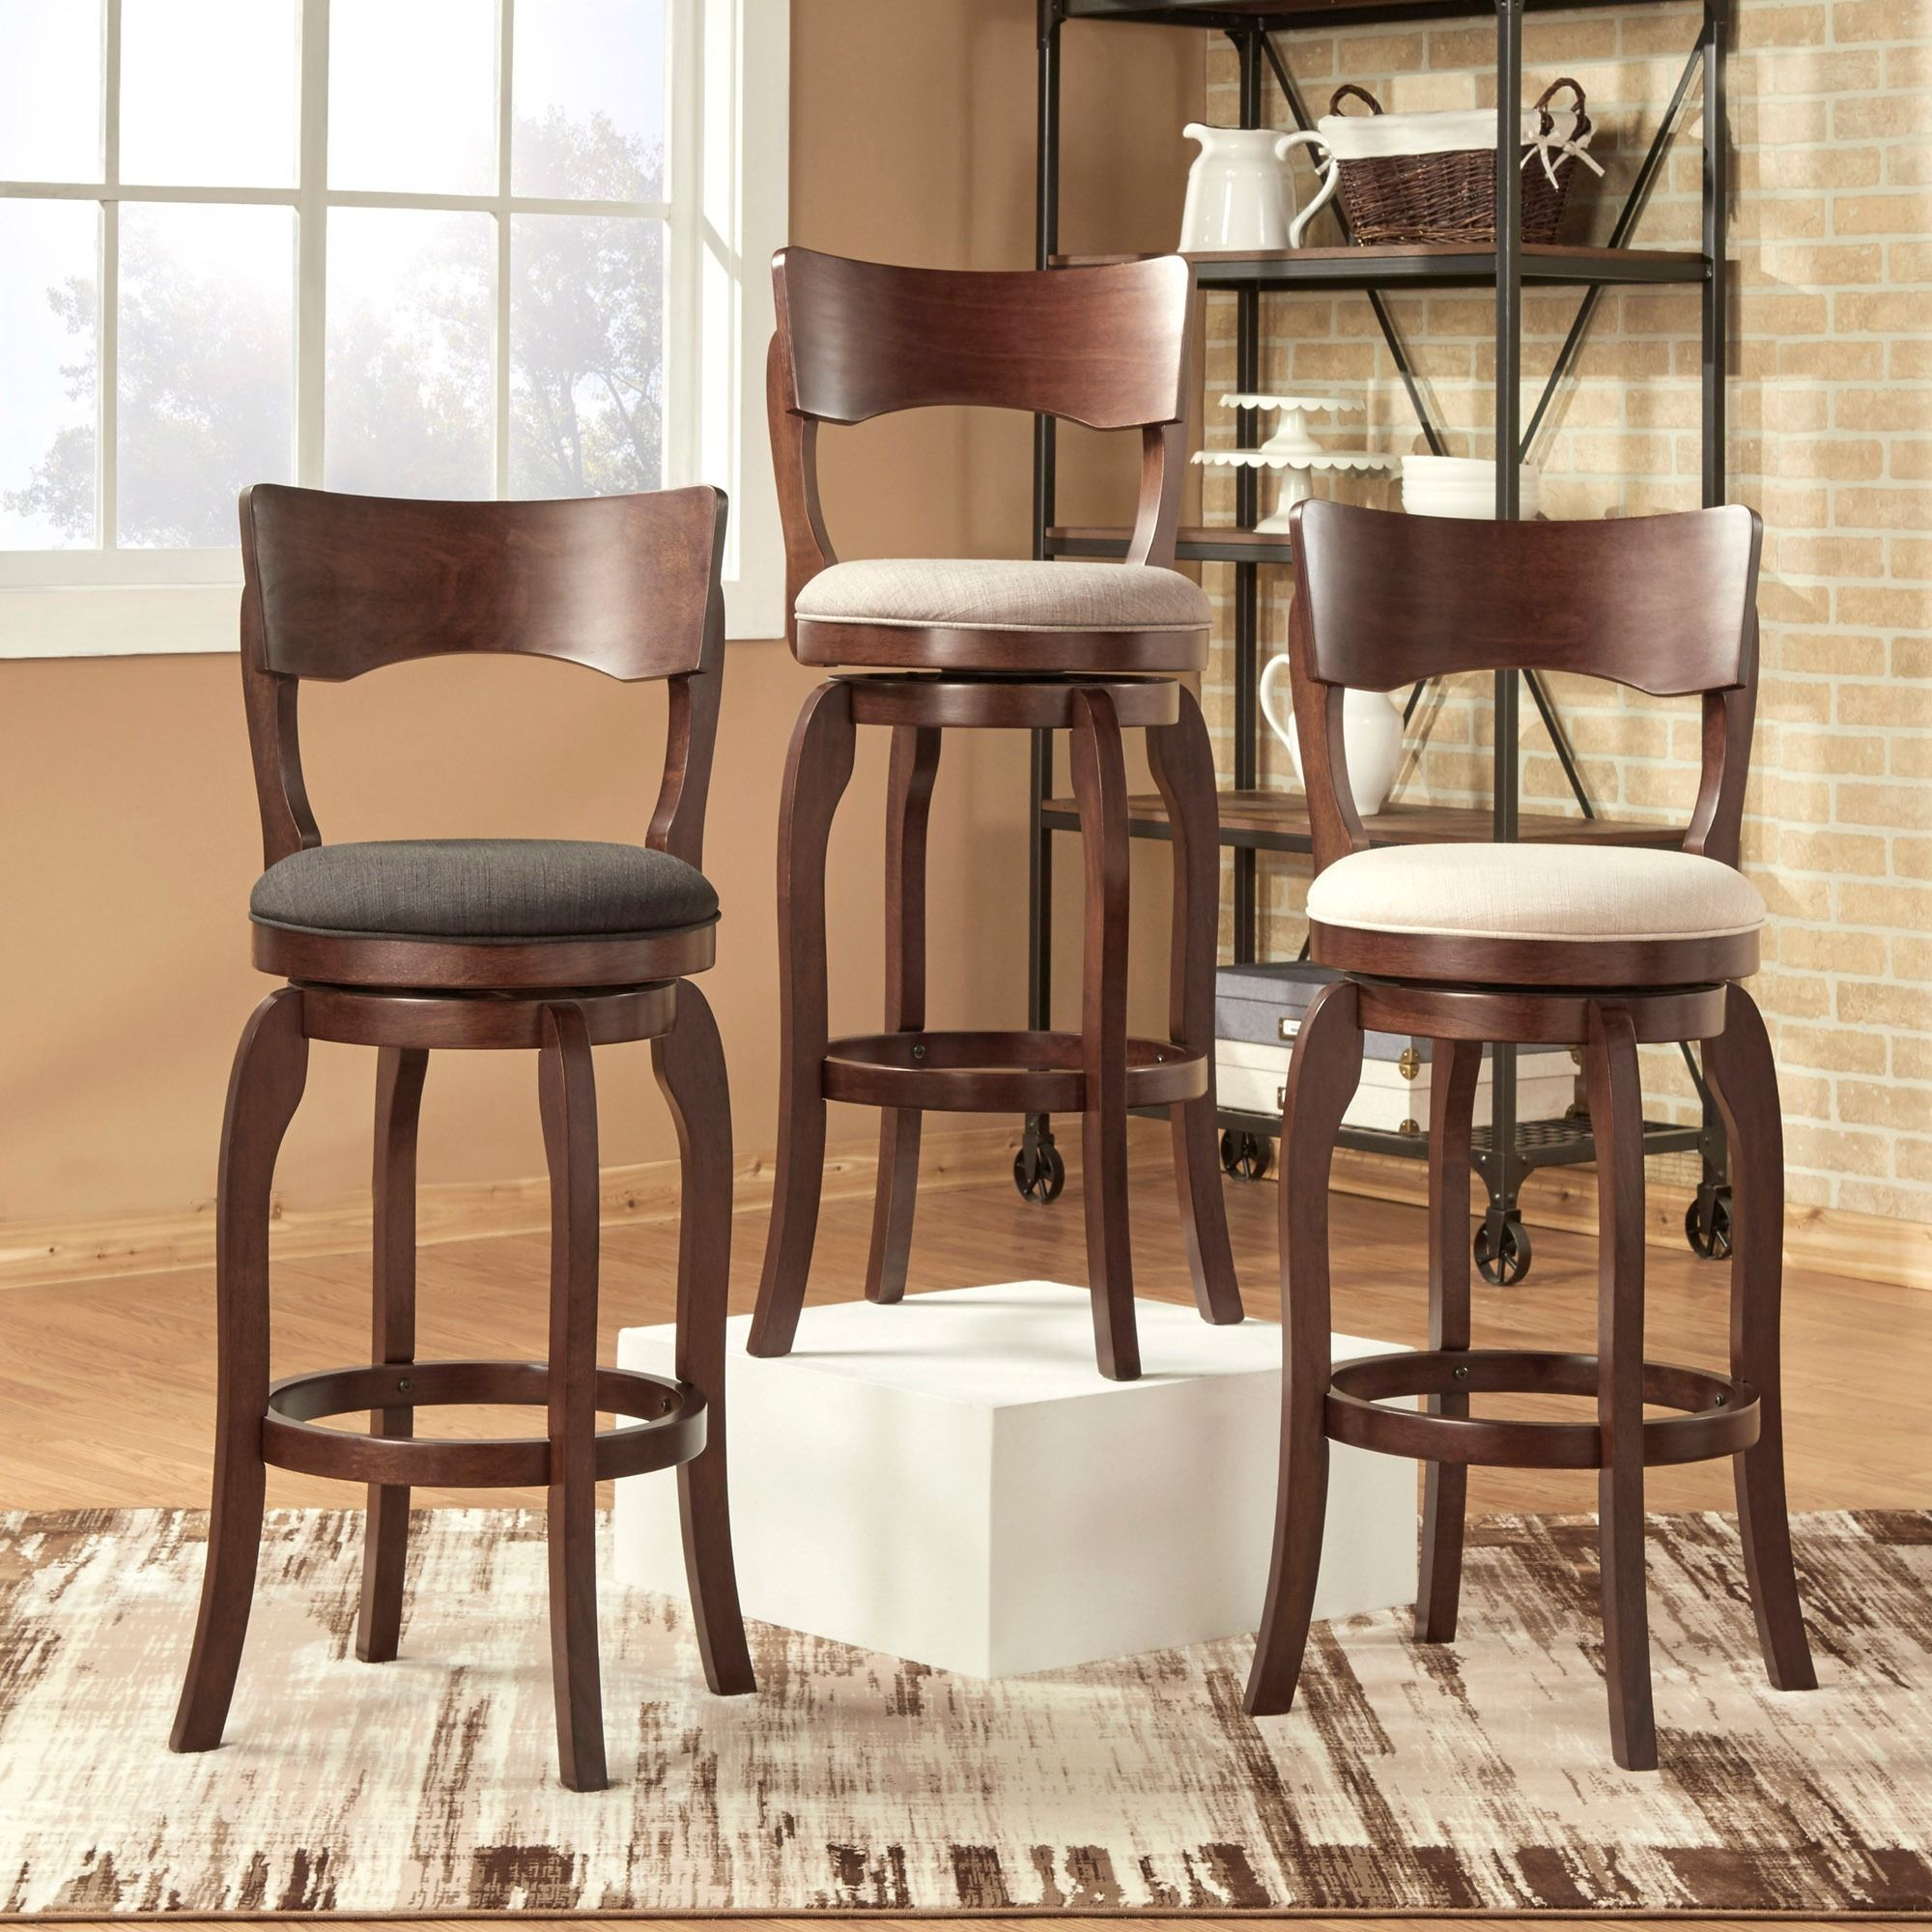 Lyla Swivel 29 Inch Brown High Back Bar Height Barstool By Inspire